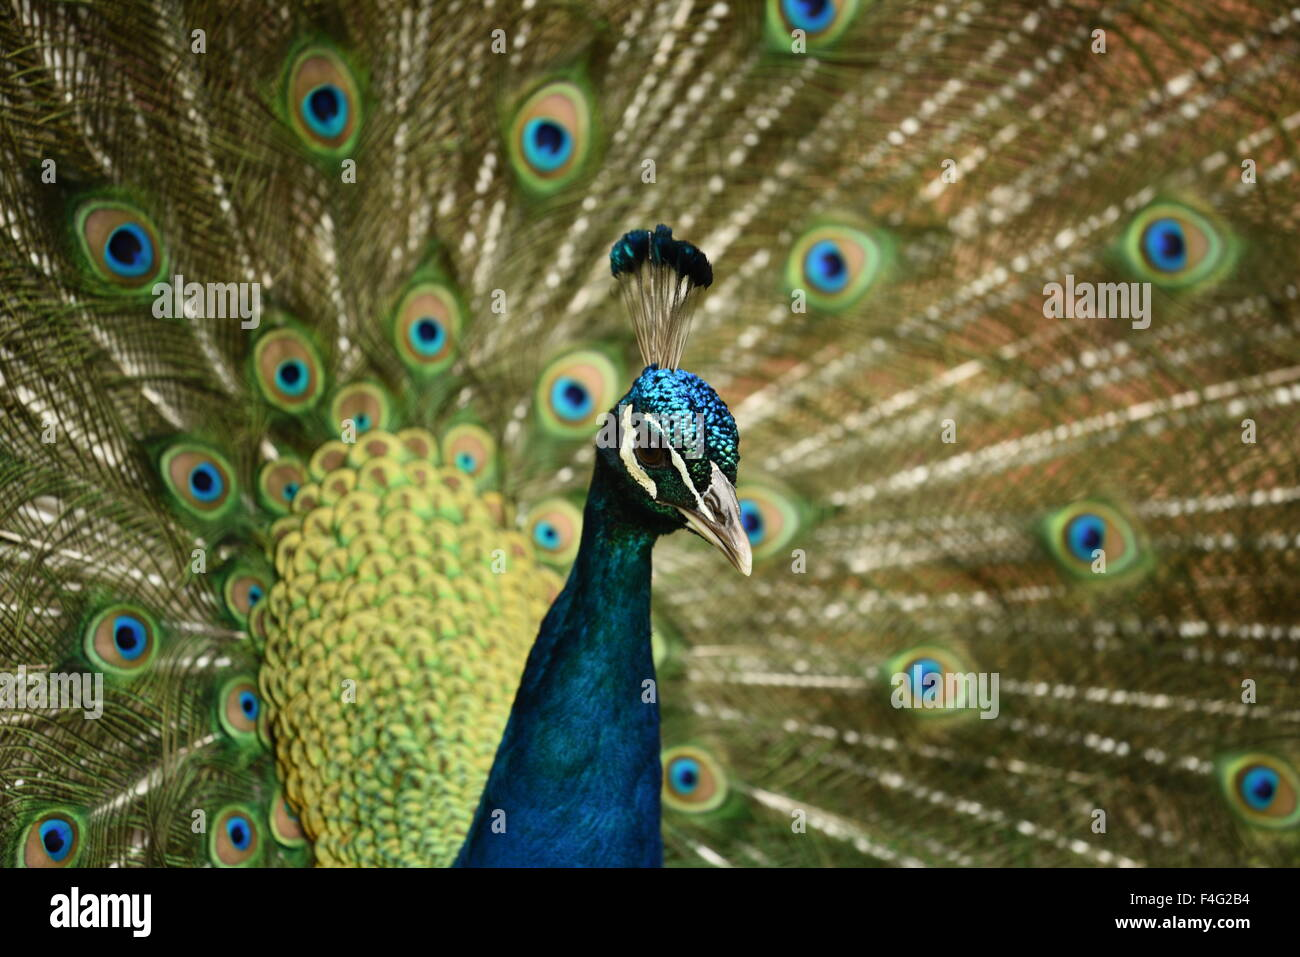 Peacock bird - Stock Image